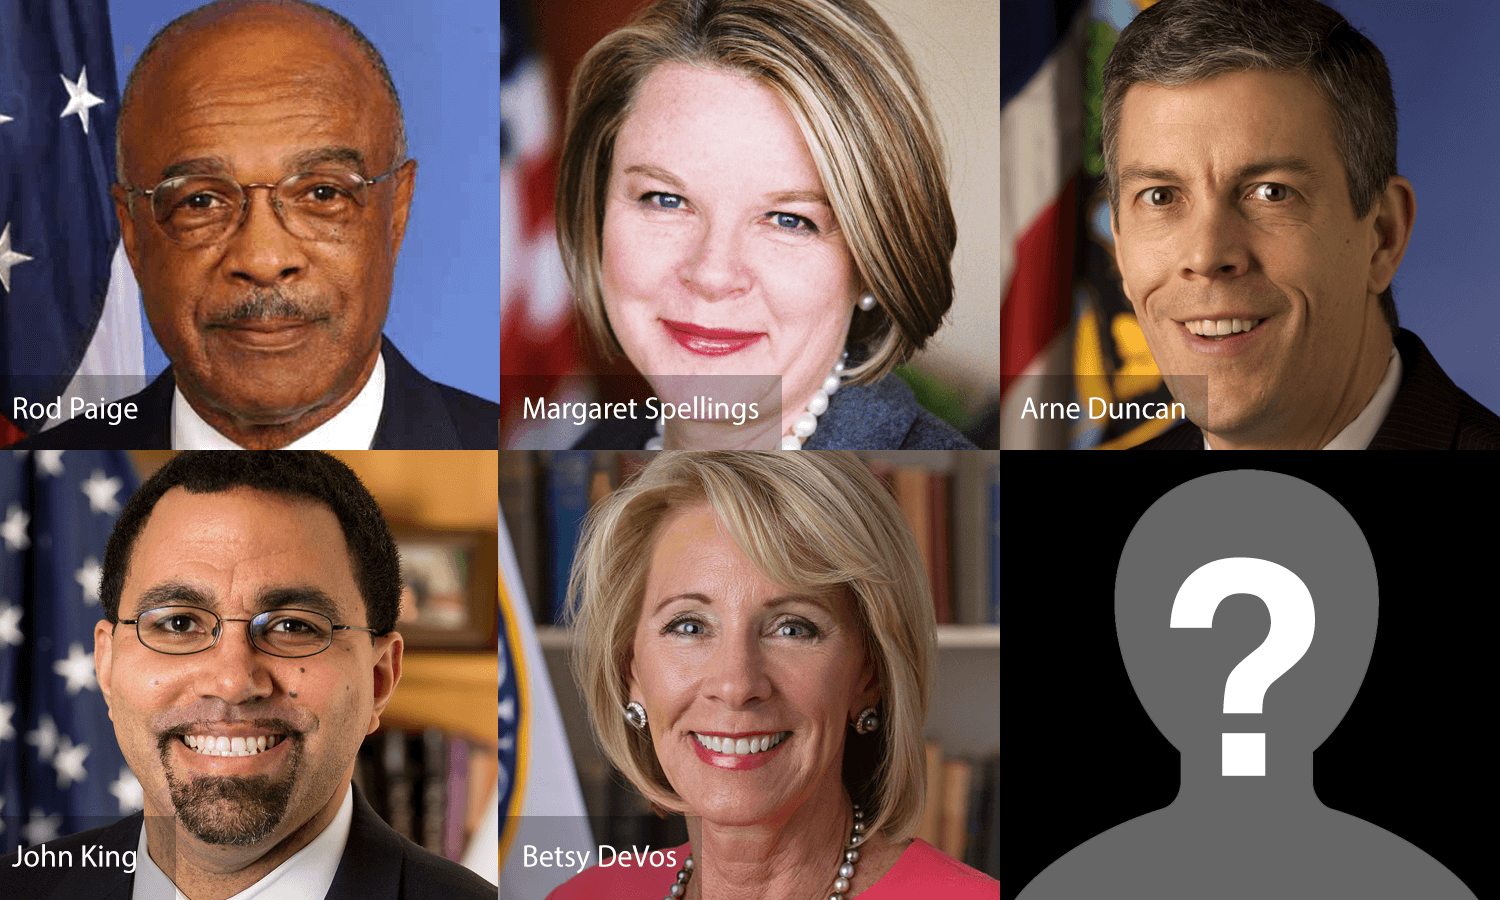 Collage of the previous five U.S. Secretaries of Education, with a question mark in the sixth box